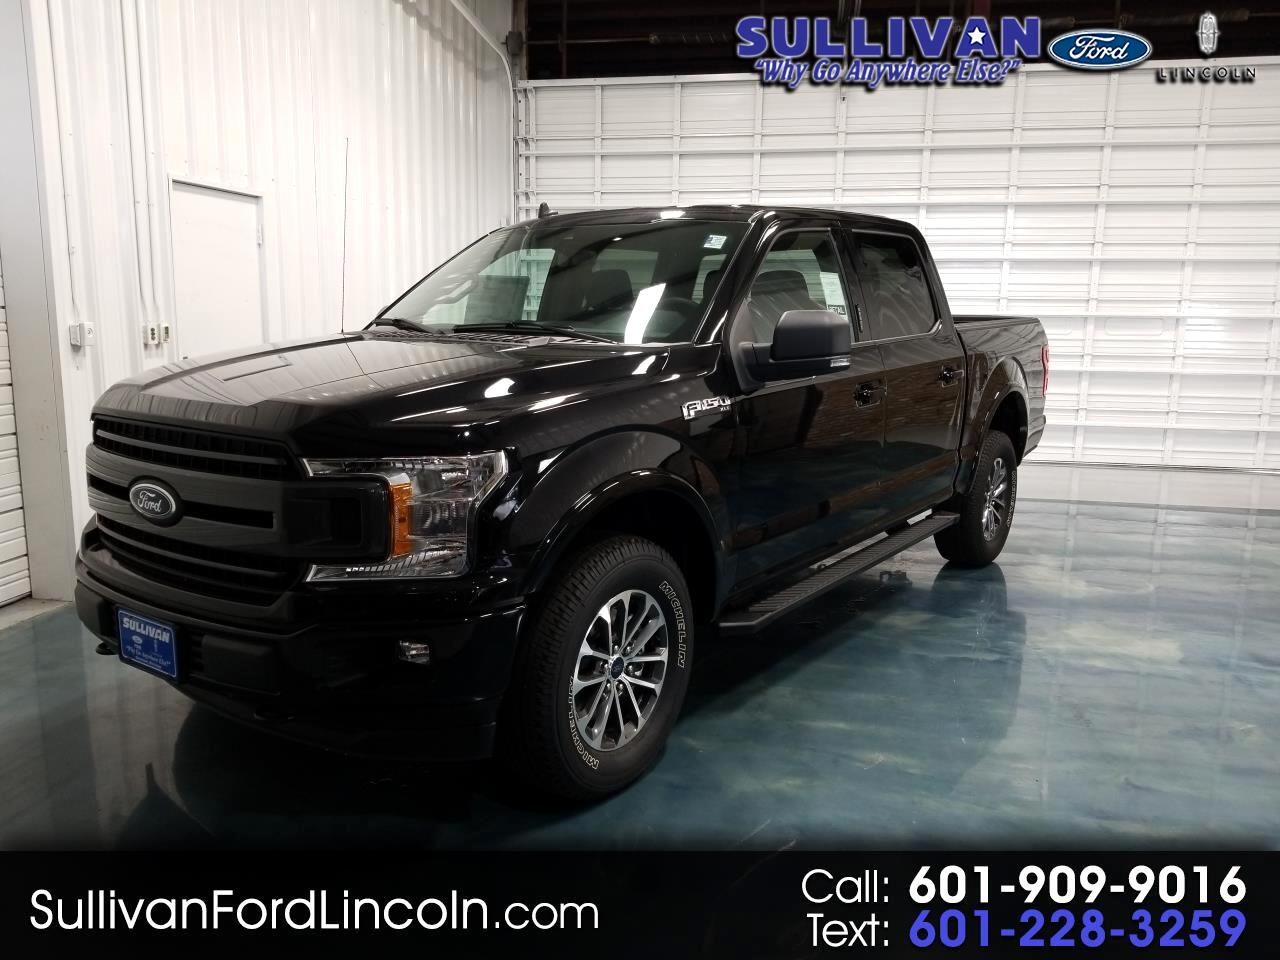 2019 Ford F-150 Supercab 133